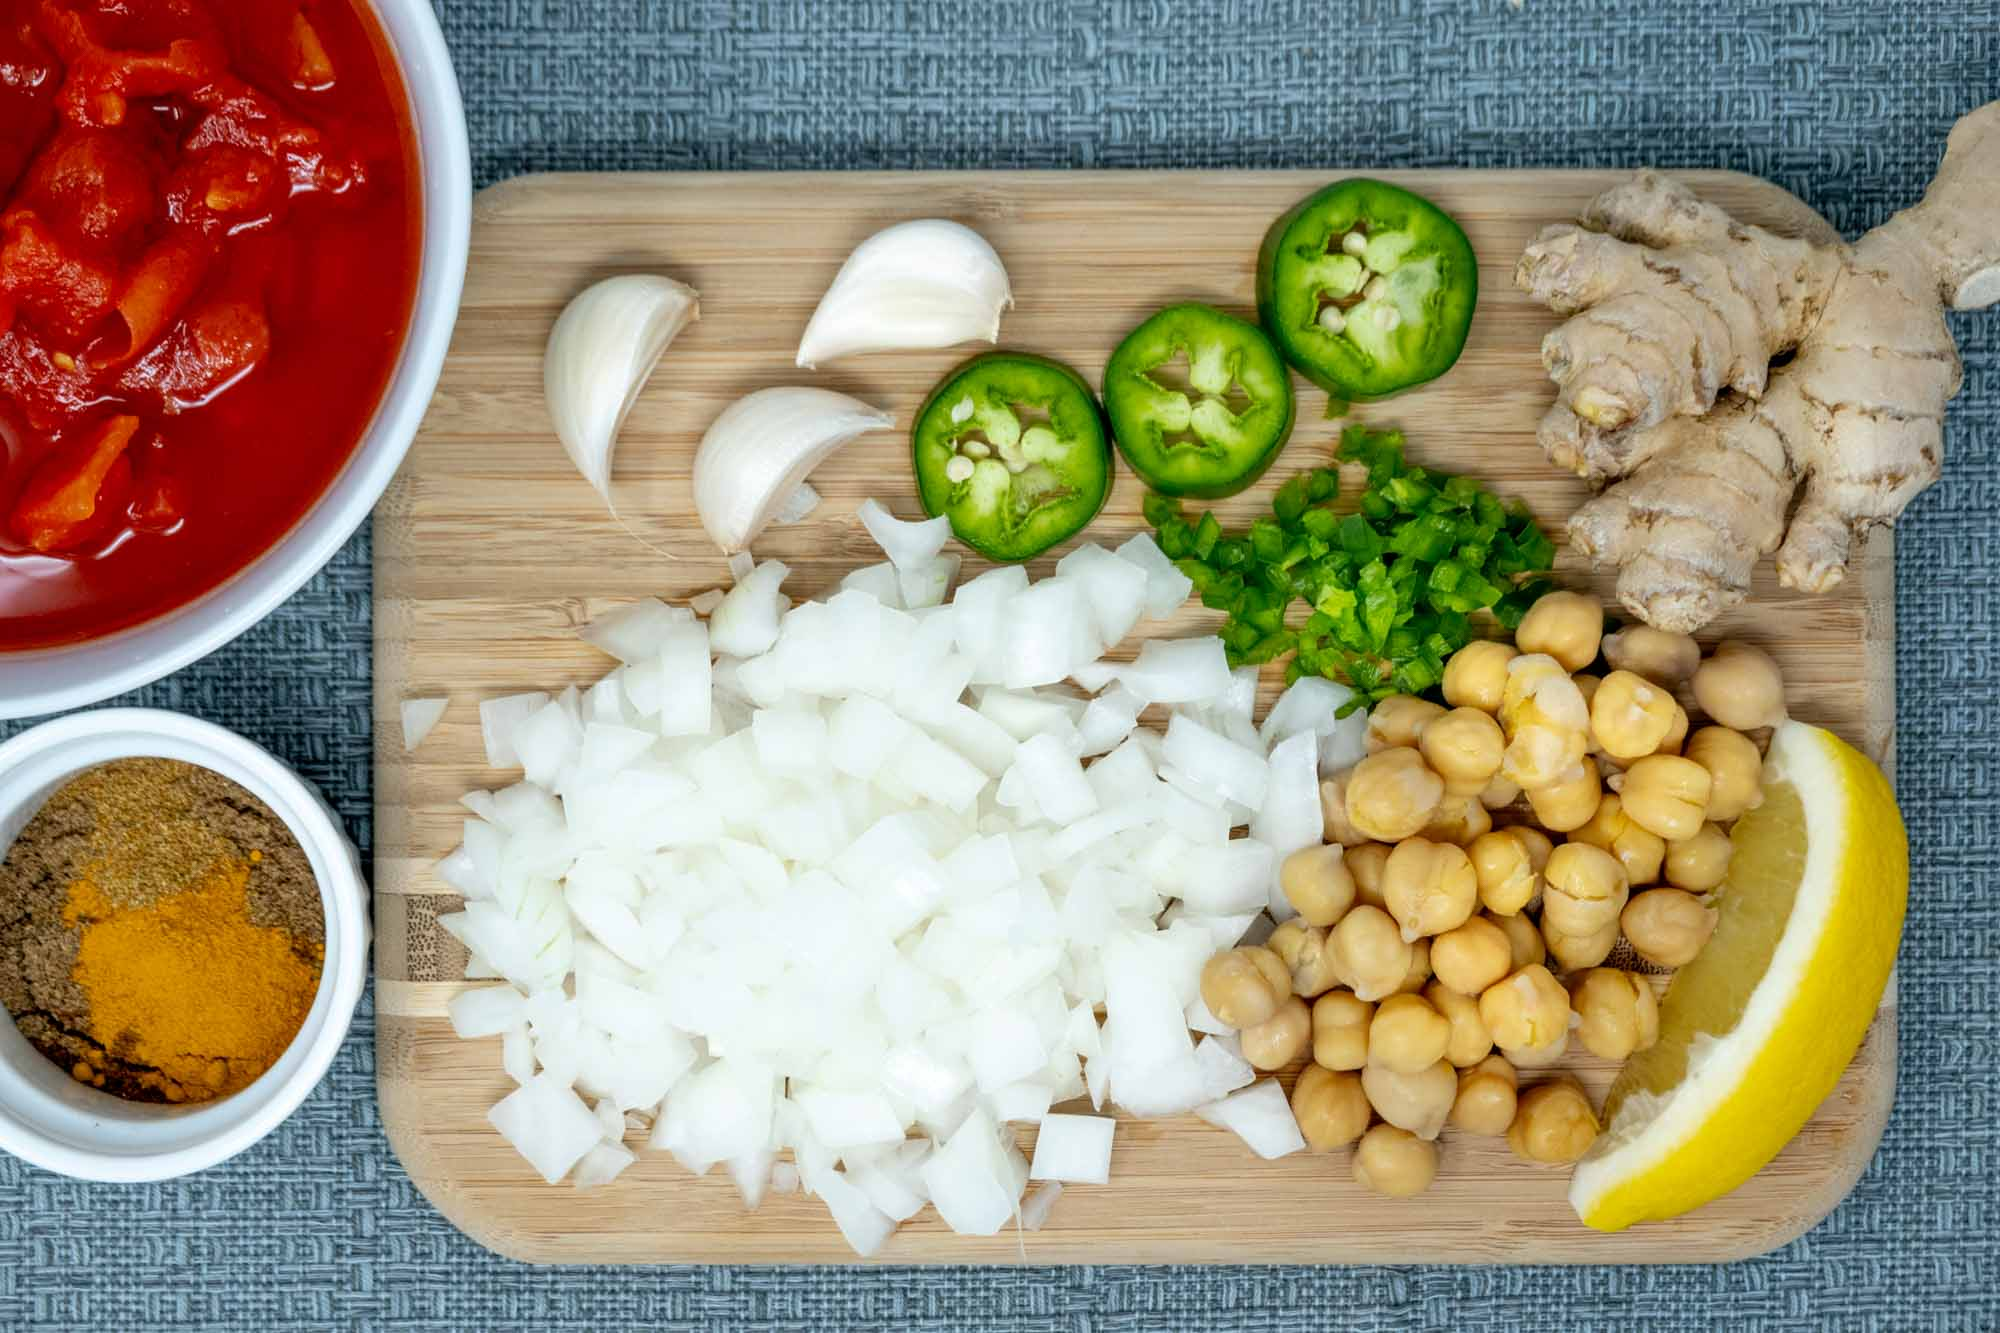 Ginger, garlic cloves, jalapeno, chickpeas, lemon, and diced onion on a cutting board beside bowls of spices and diced tomatoes